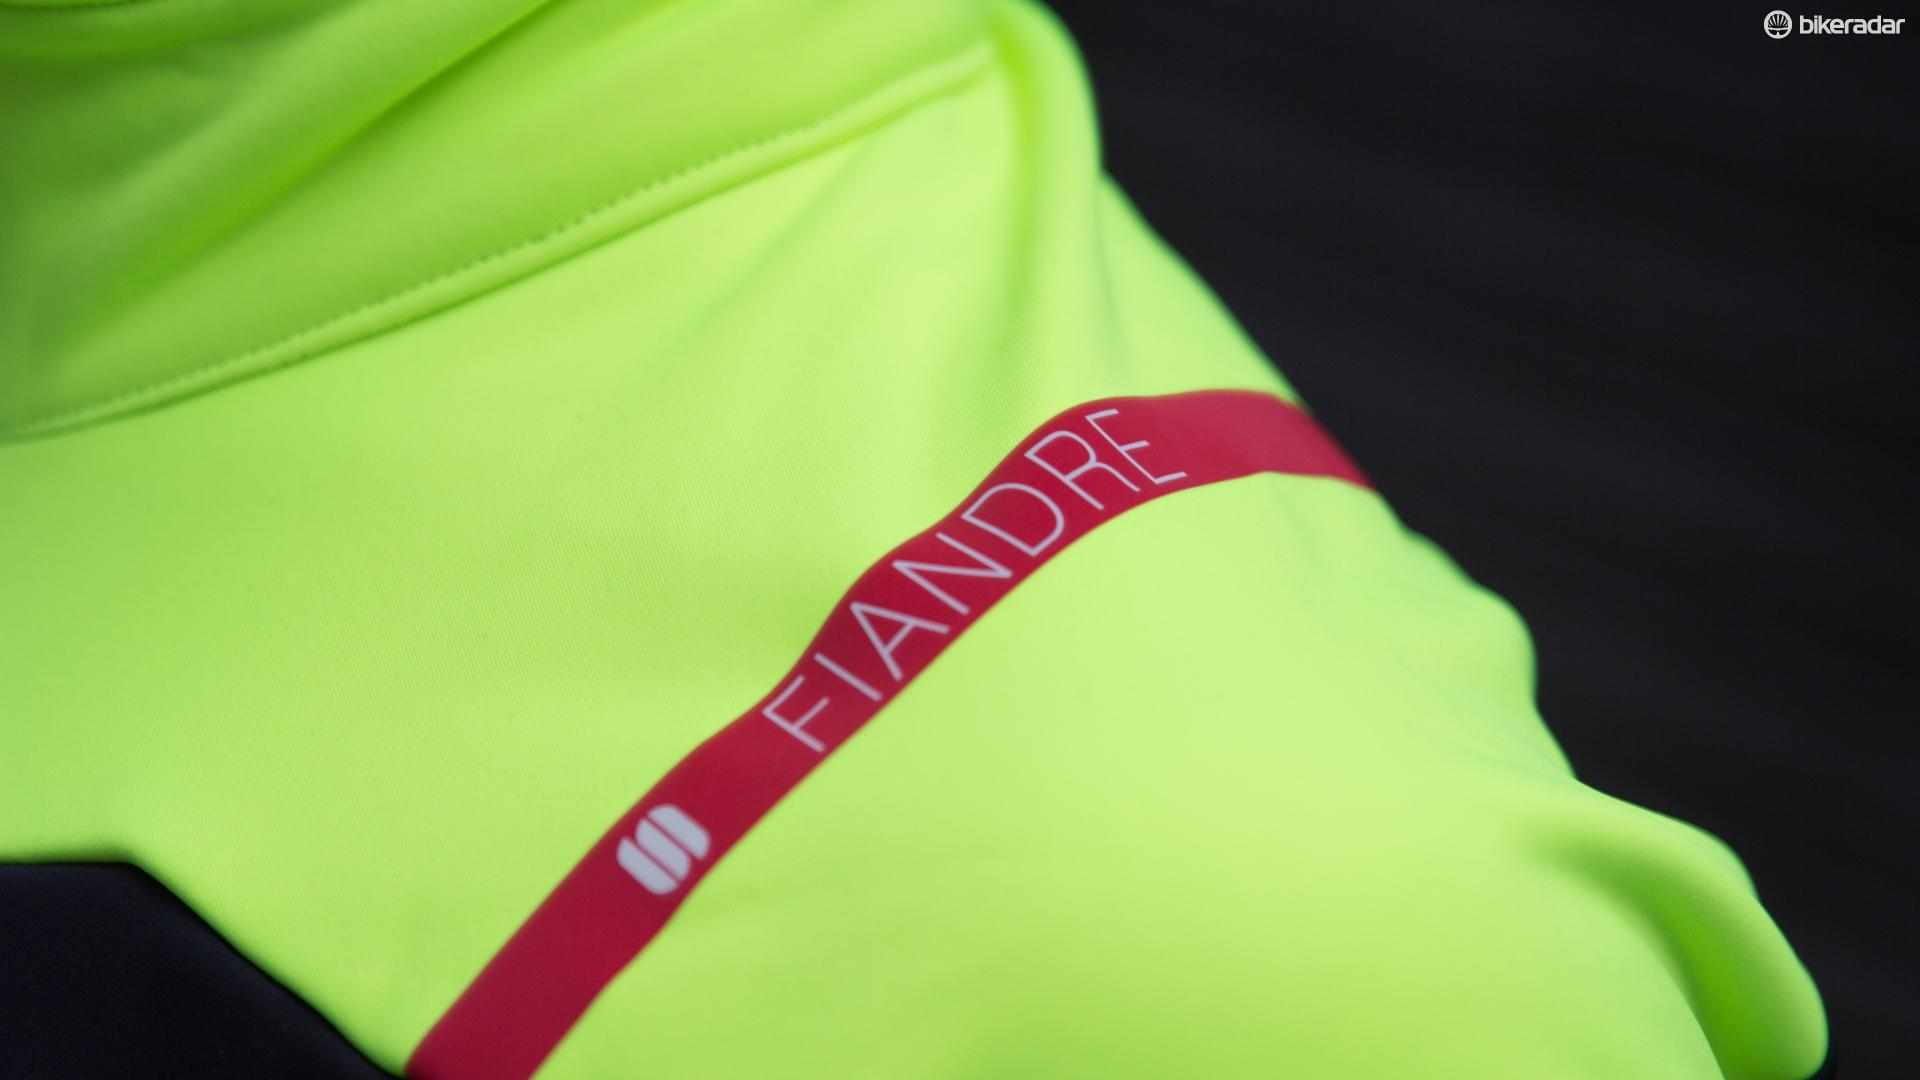 Sportful's Fiandre range is inspired by the changeable conditions of the Flanders region in Belgium